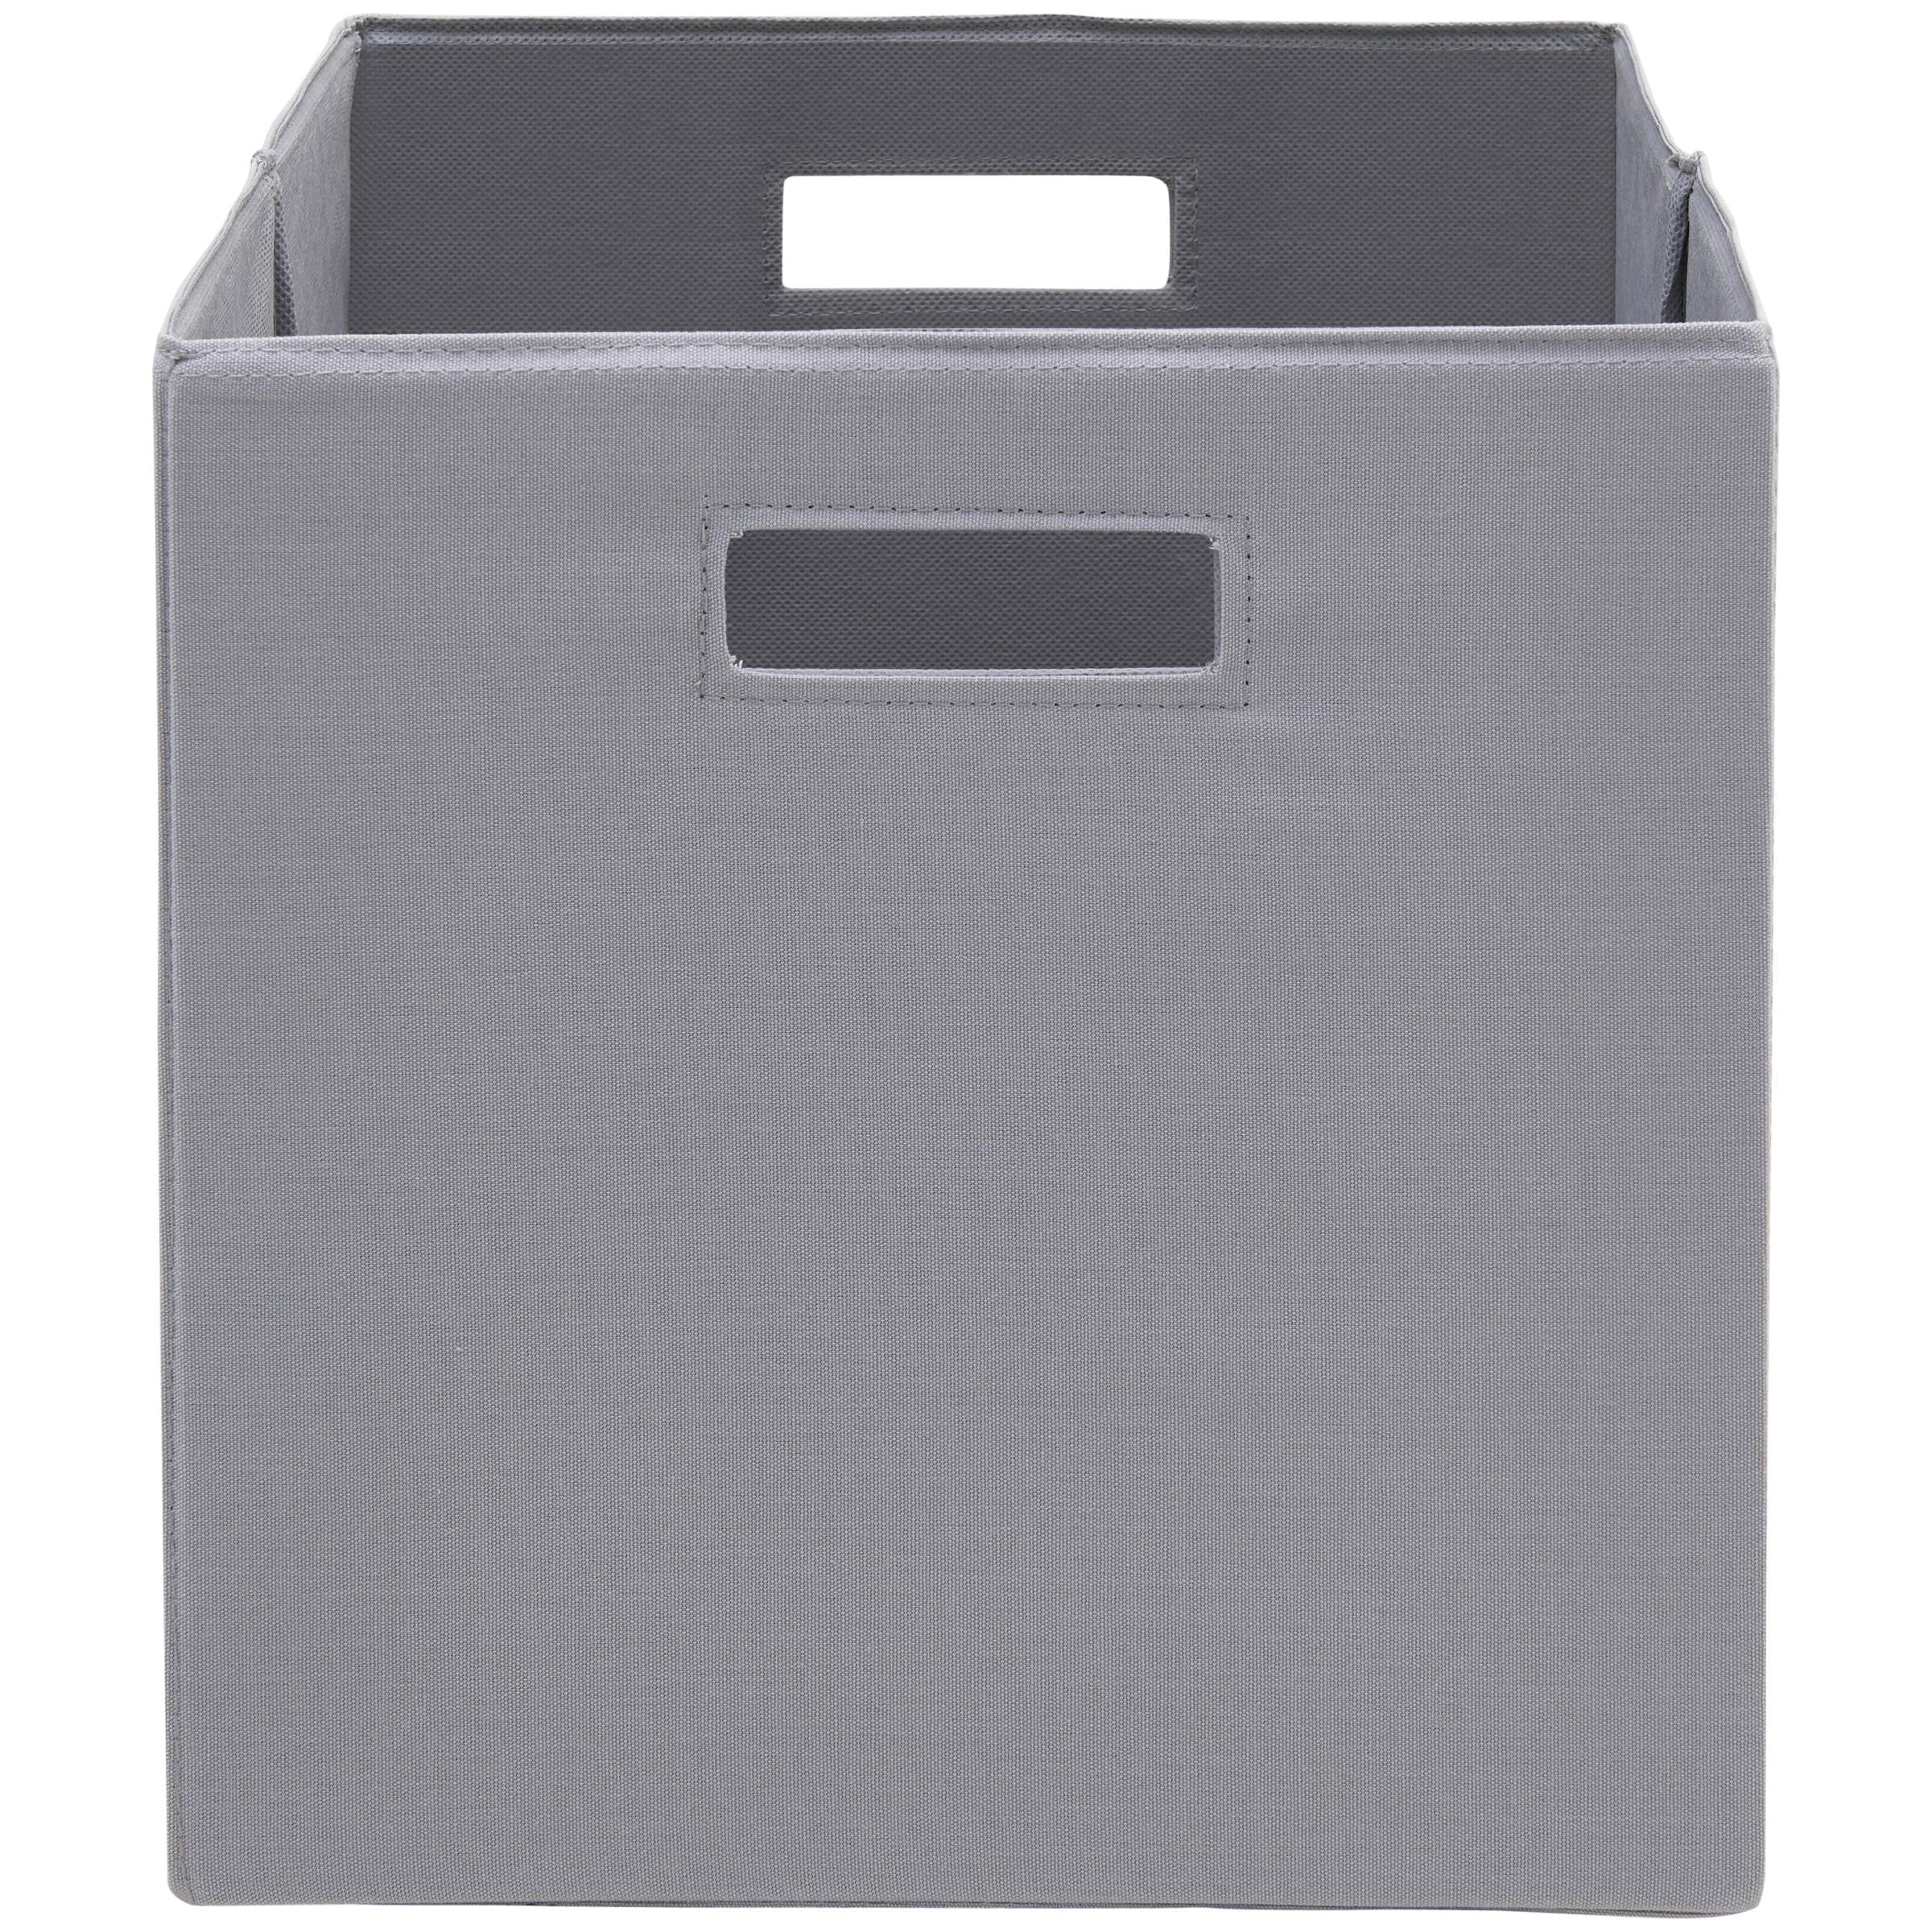 Better Homes and Gardens Collapsible Storage Bin, Set of 2 by Sedo Vinako Co., Ltd